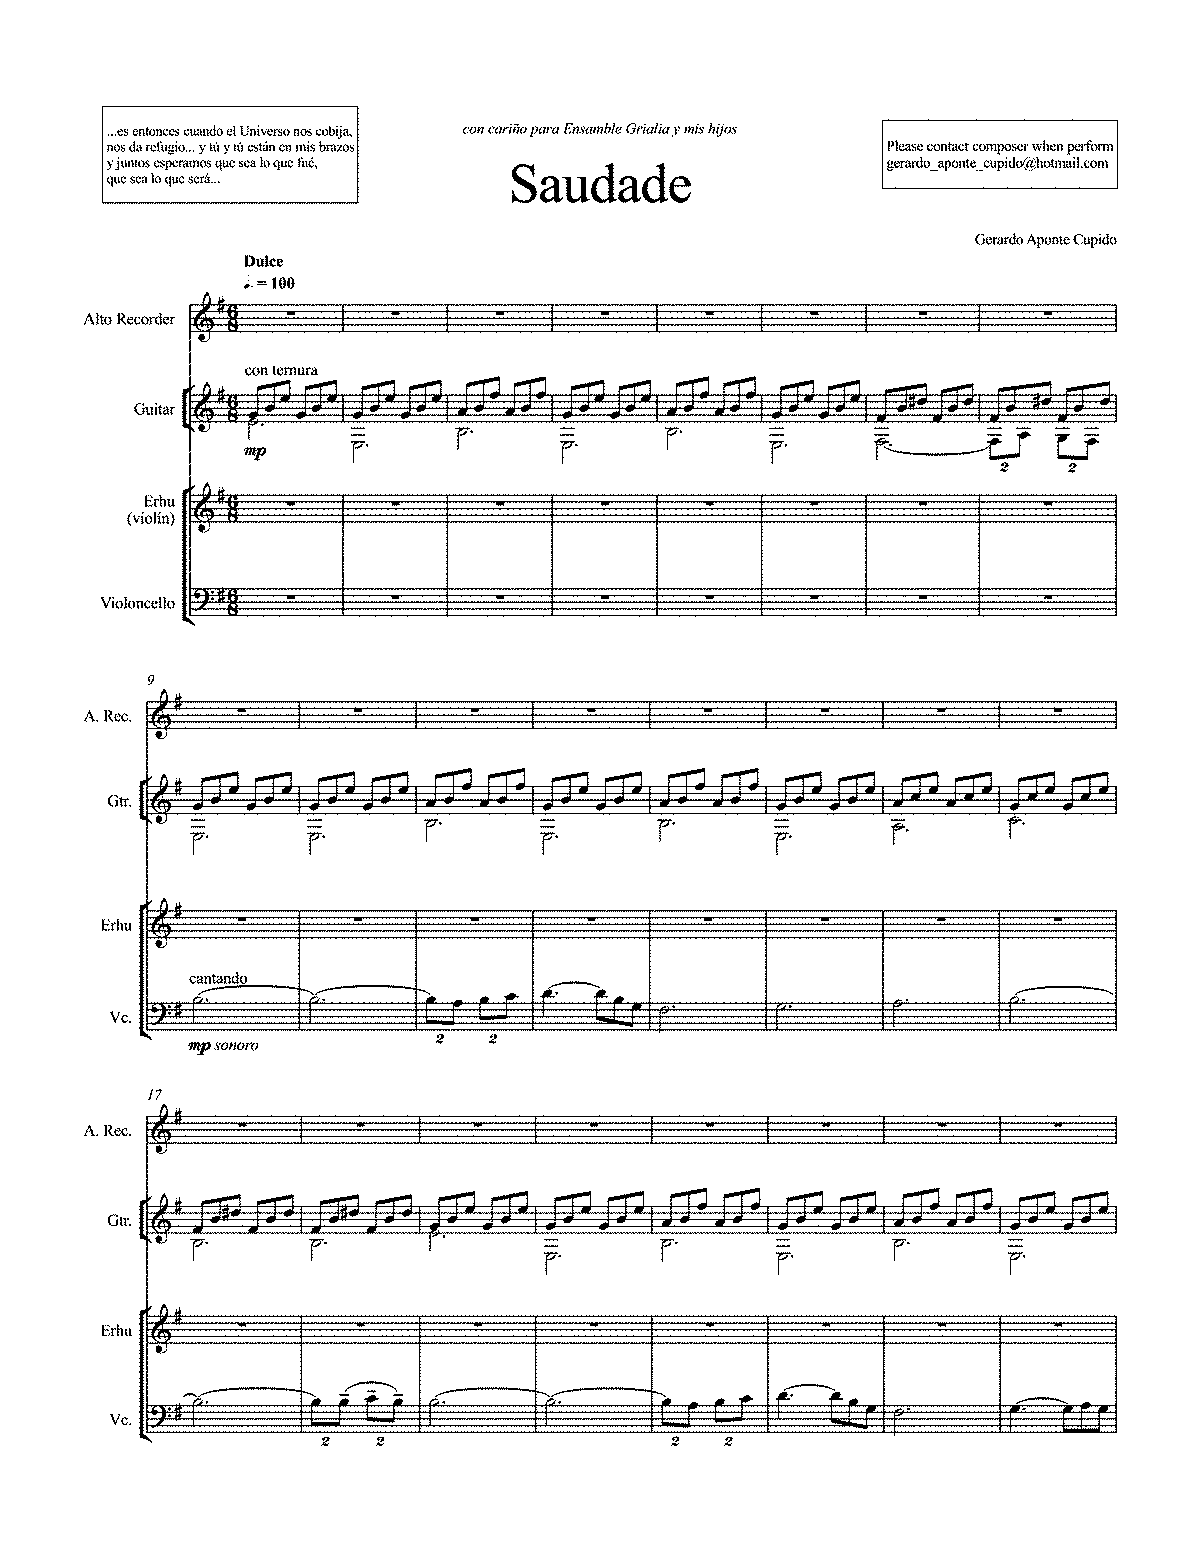 PMLP617642-Saudade - score and parts.pdf